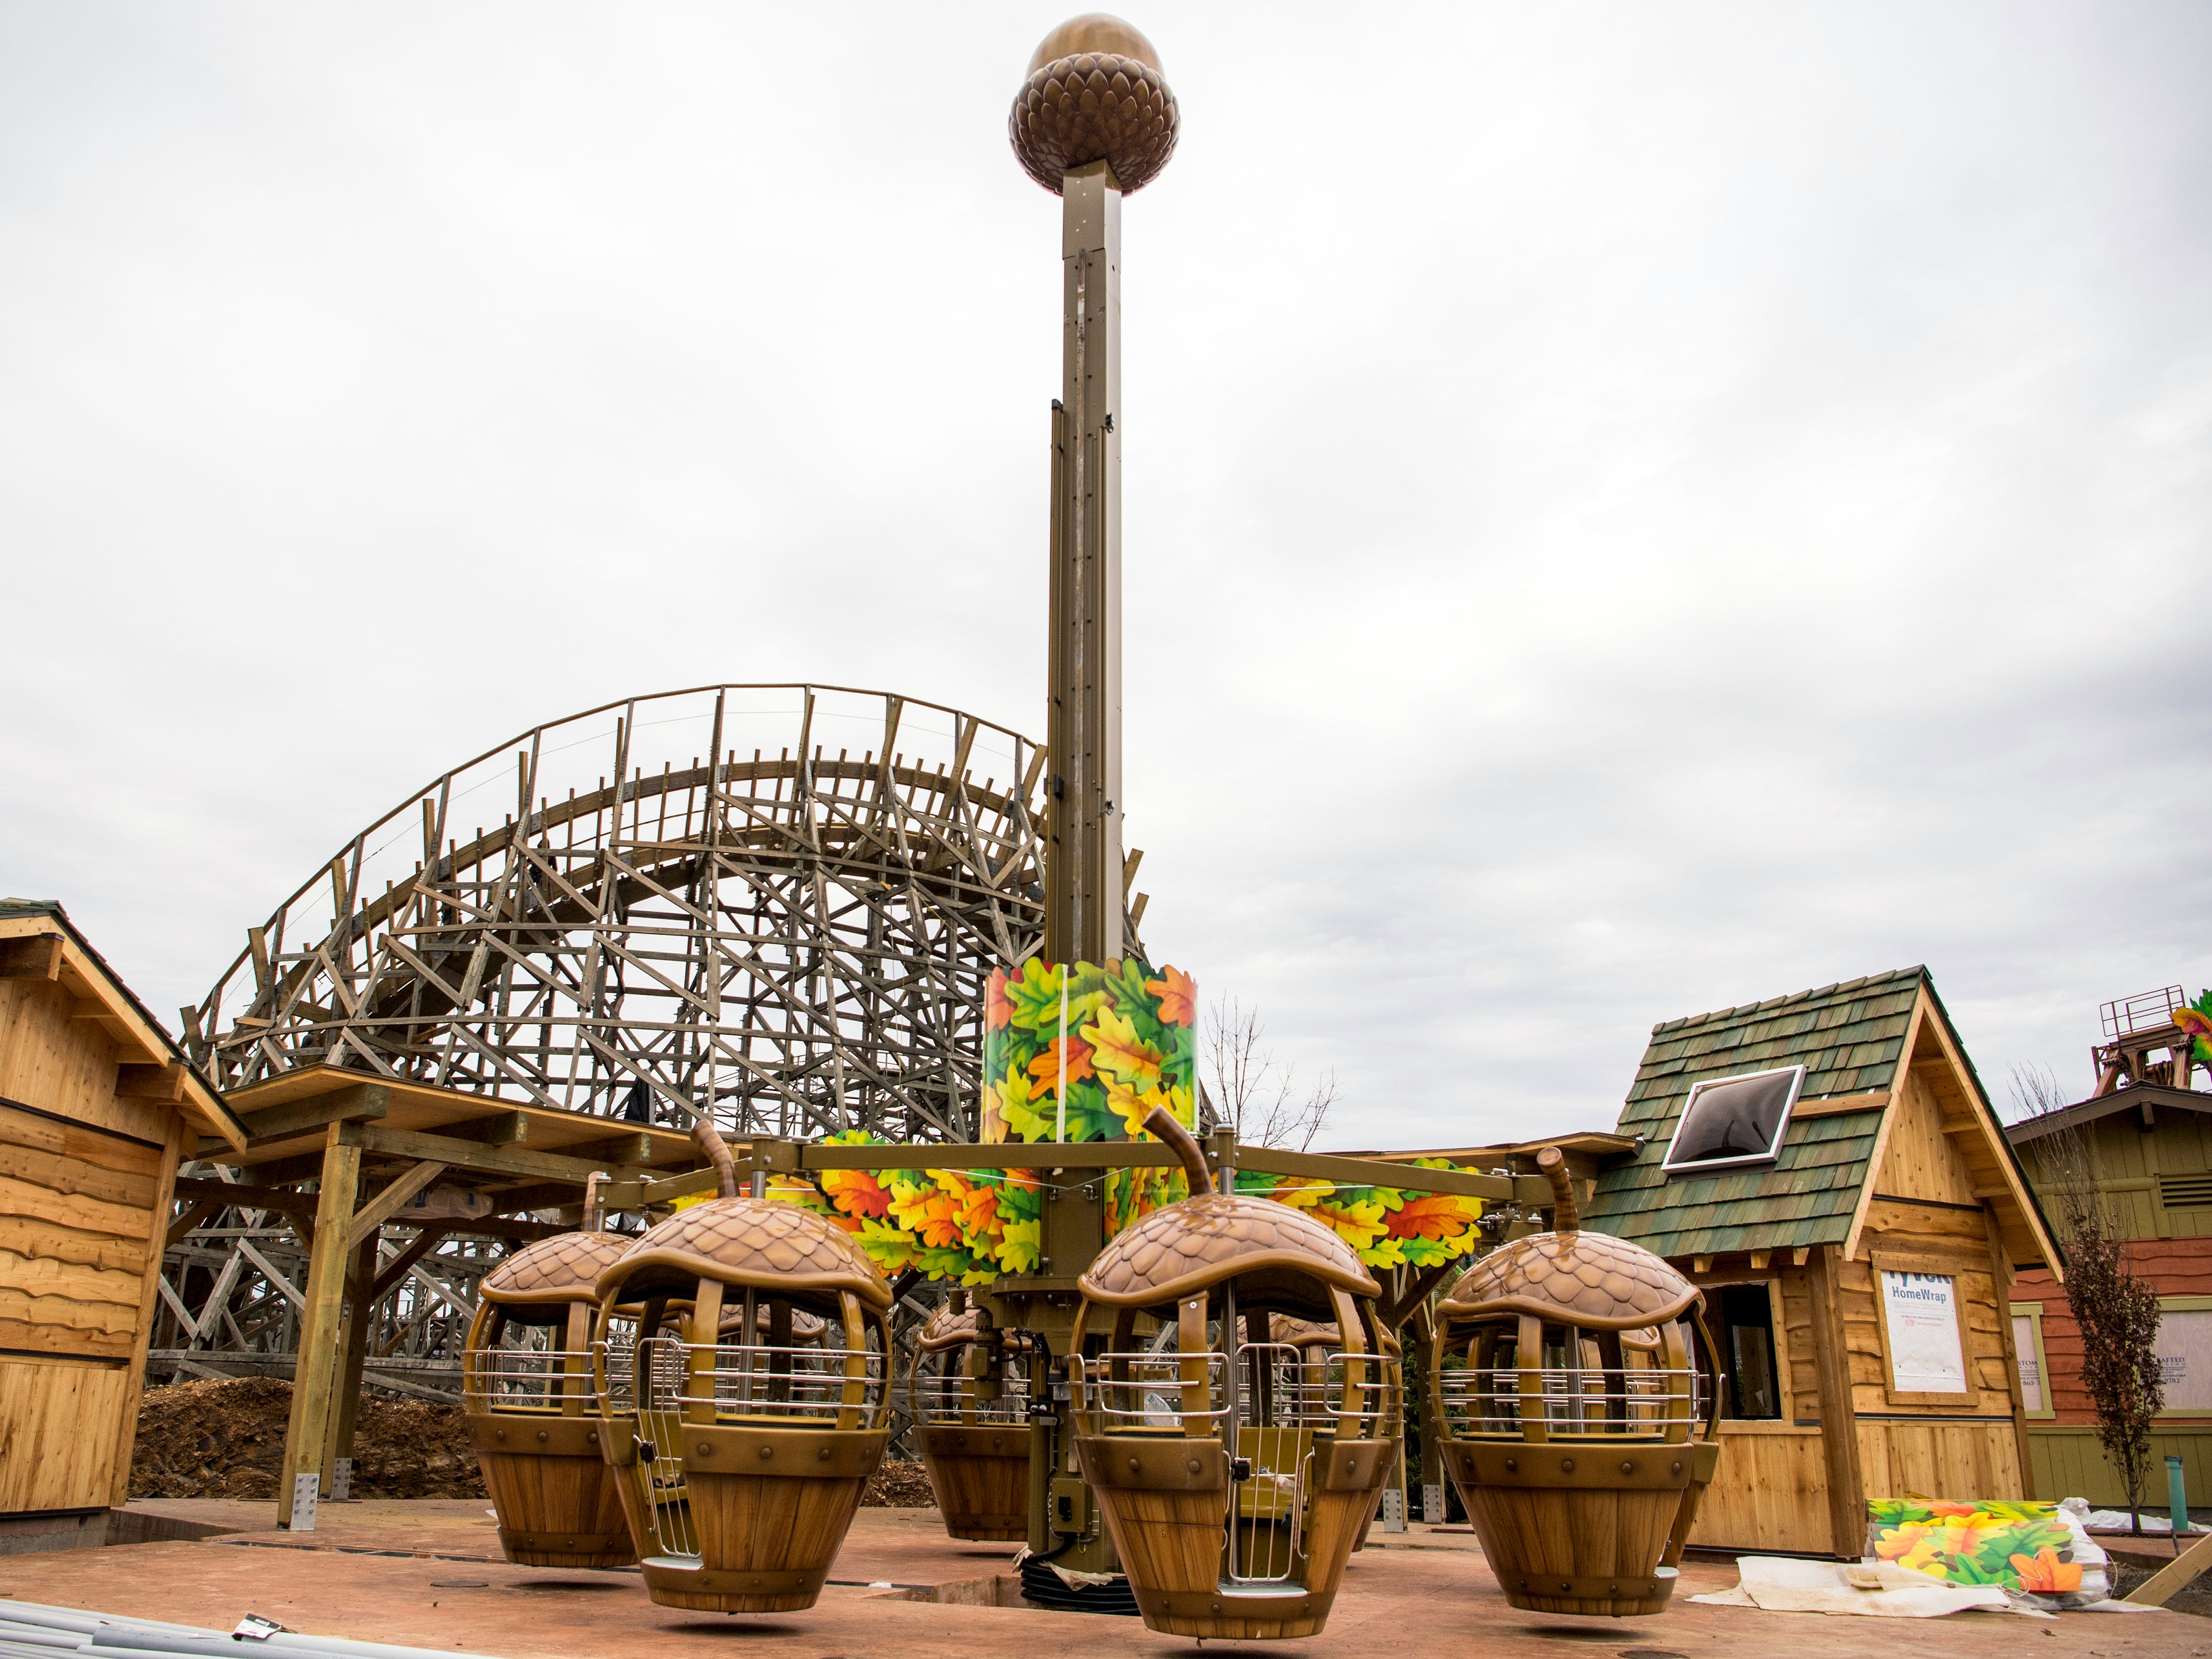 The Treetop Tower ride in Dollywood's new Wildwood Grove area of the park on Tuesday, February 19, 2019.